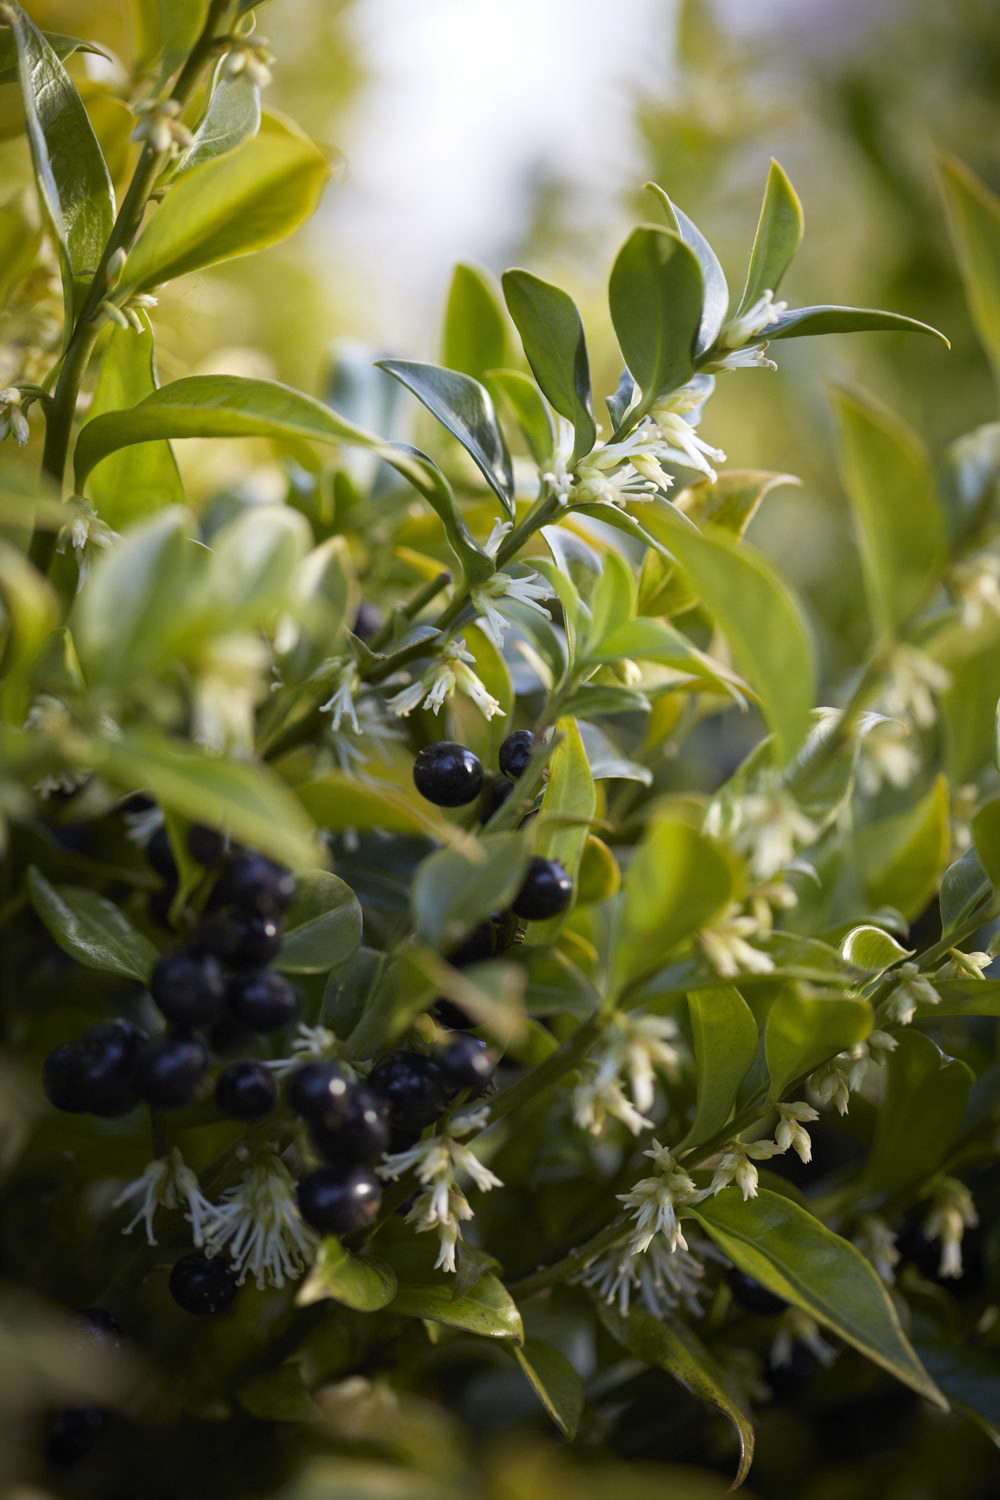 Creamy-white flowers and long lasting berries of Sarcococca confusa.